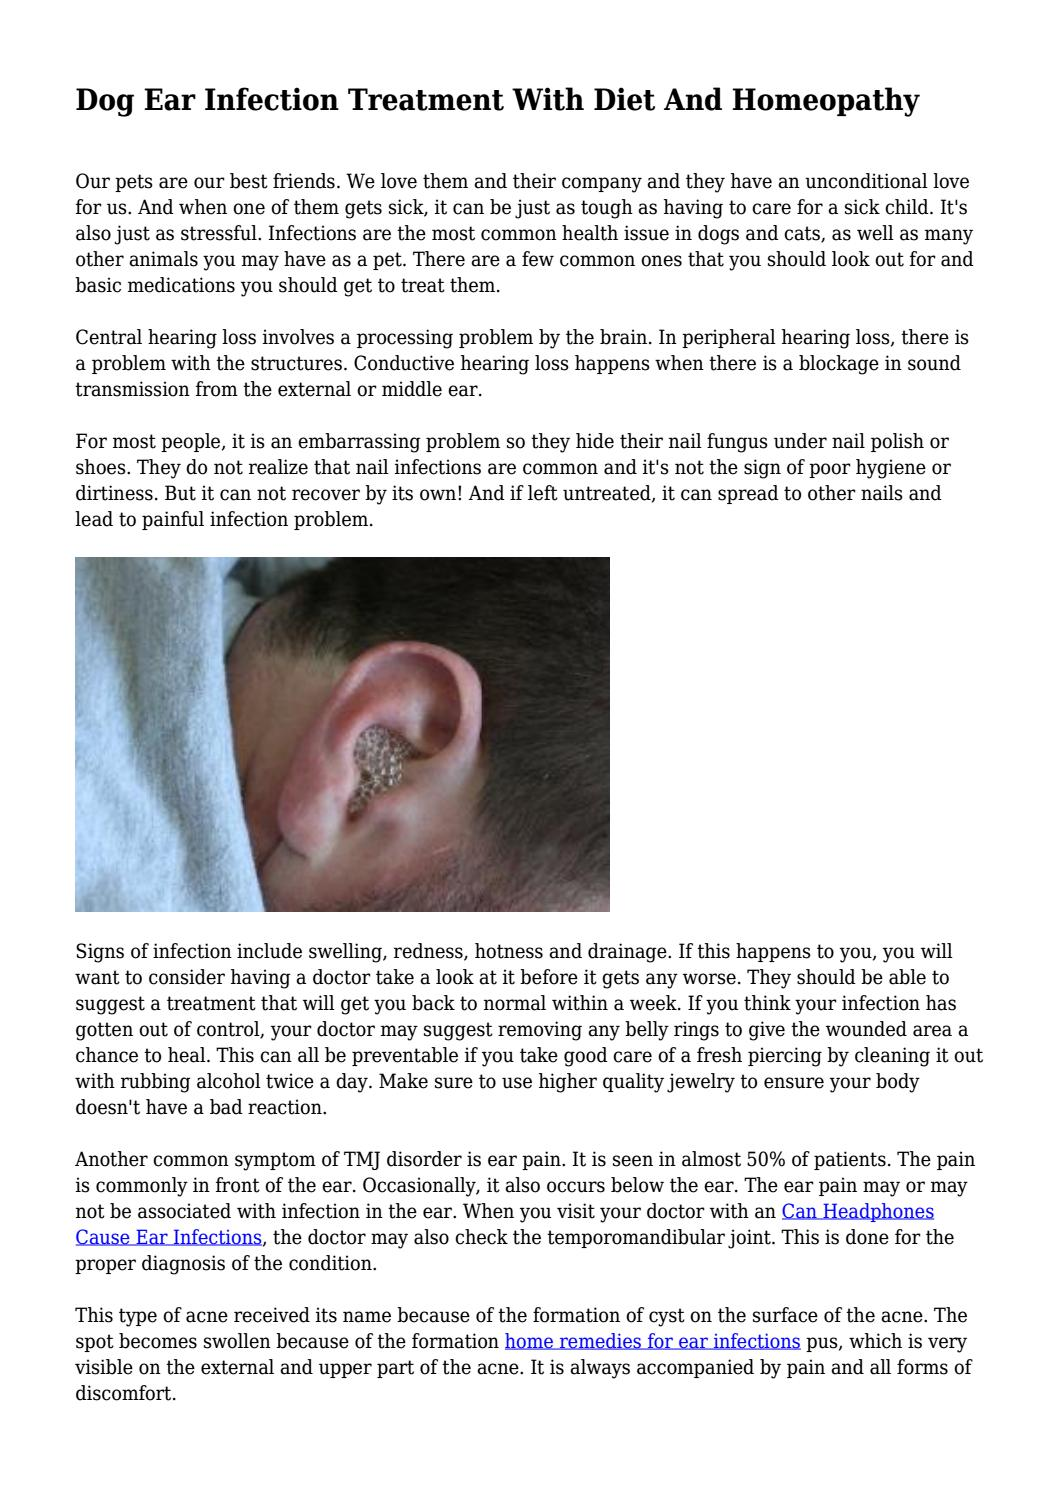 Dog Ear Infection Treatment With Diet And Homeopathy    by